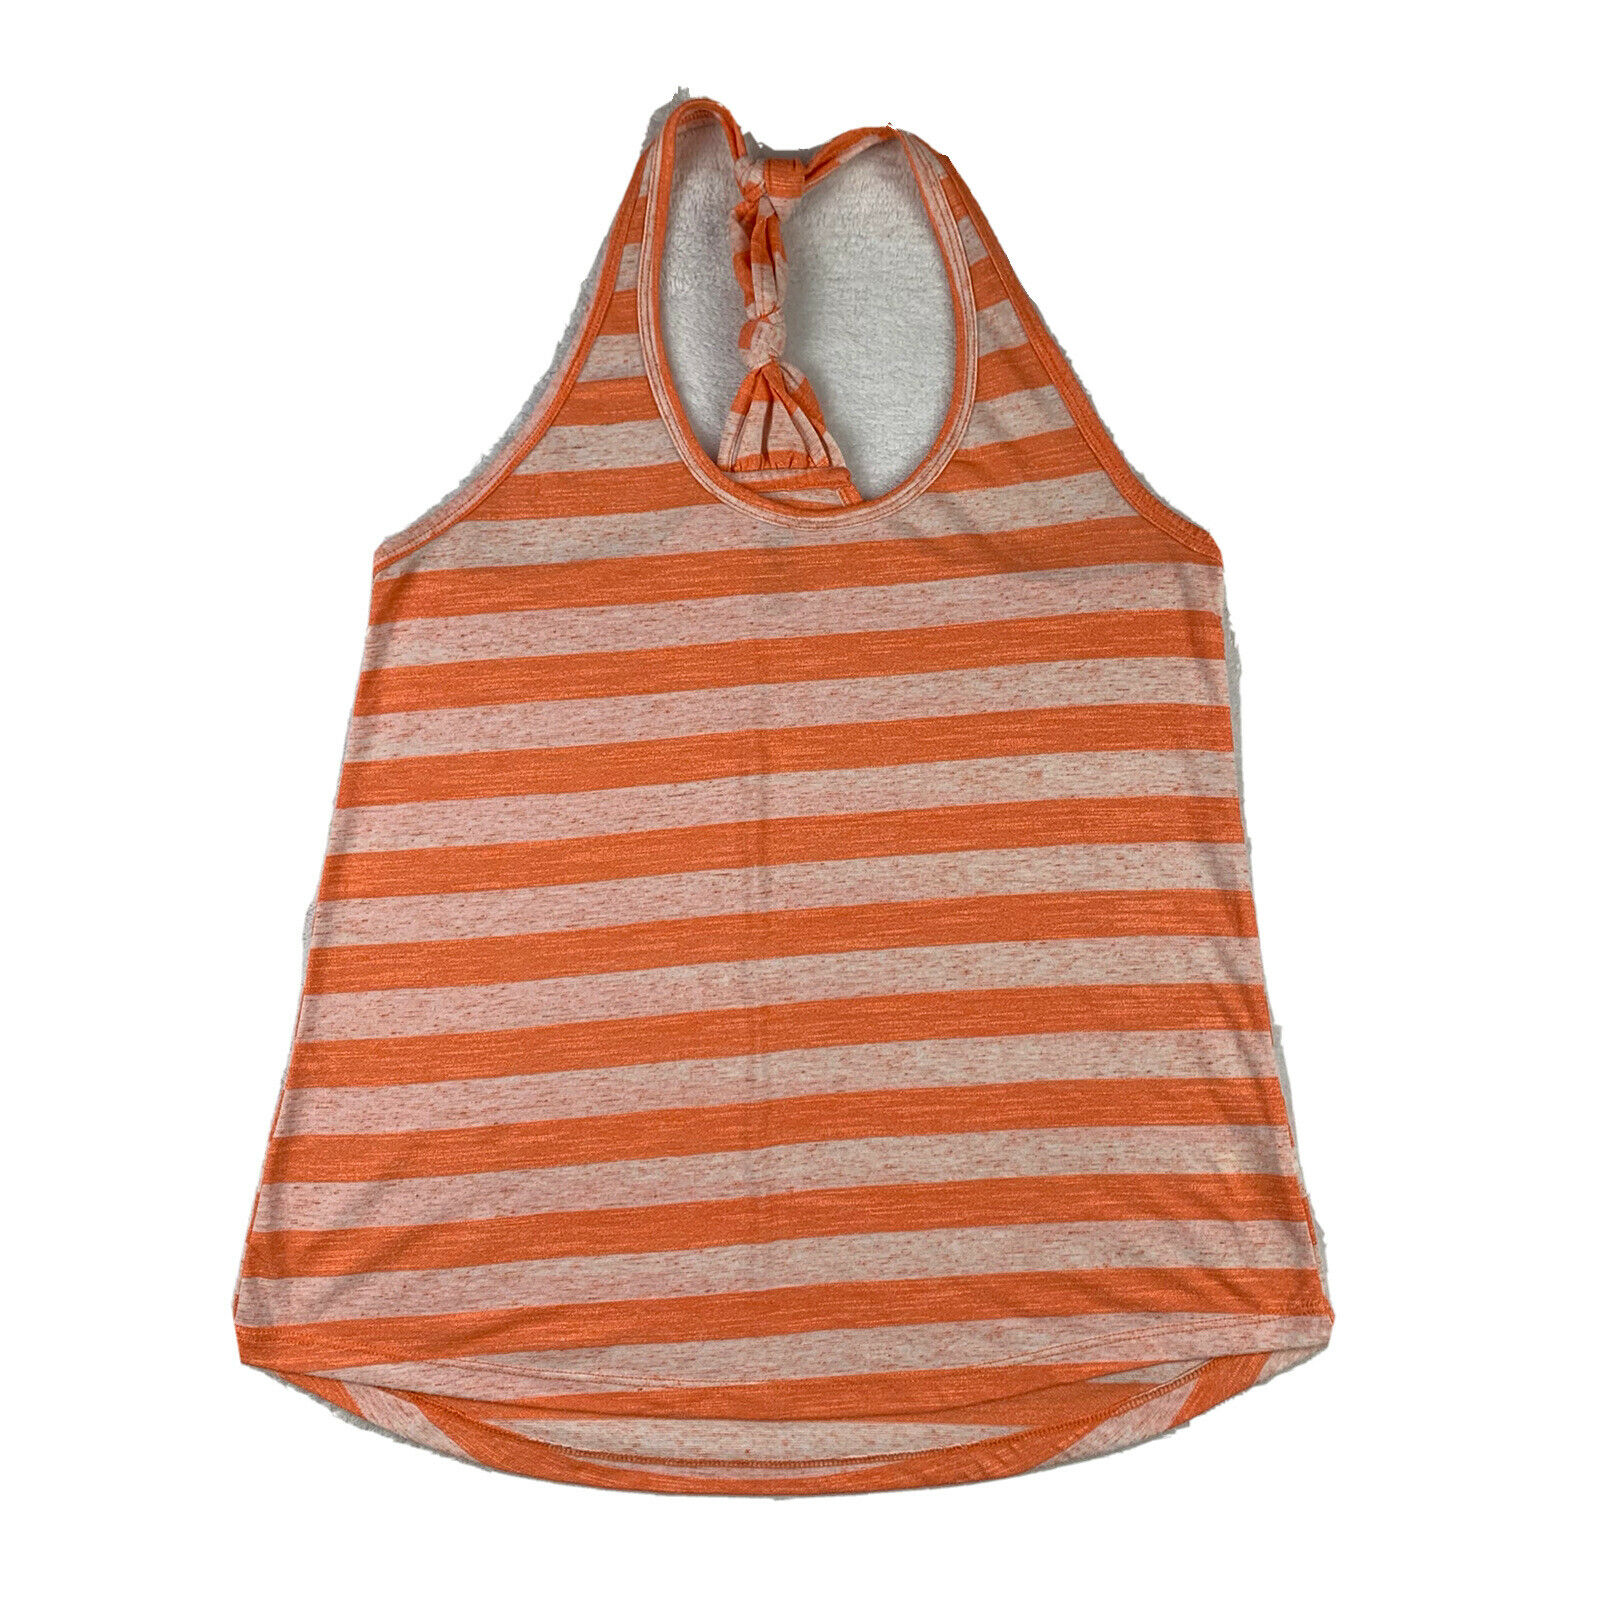 Balance Collection Tank Top Women Small Orange Striped Racerback Athletic Gym